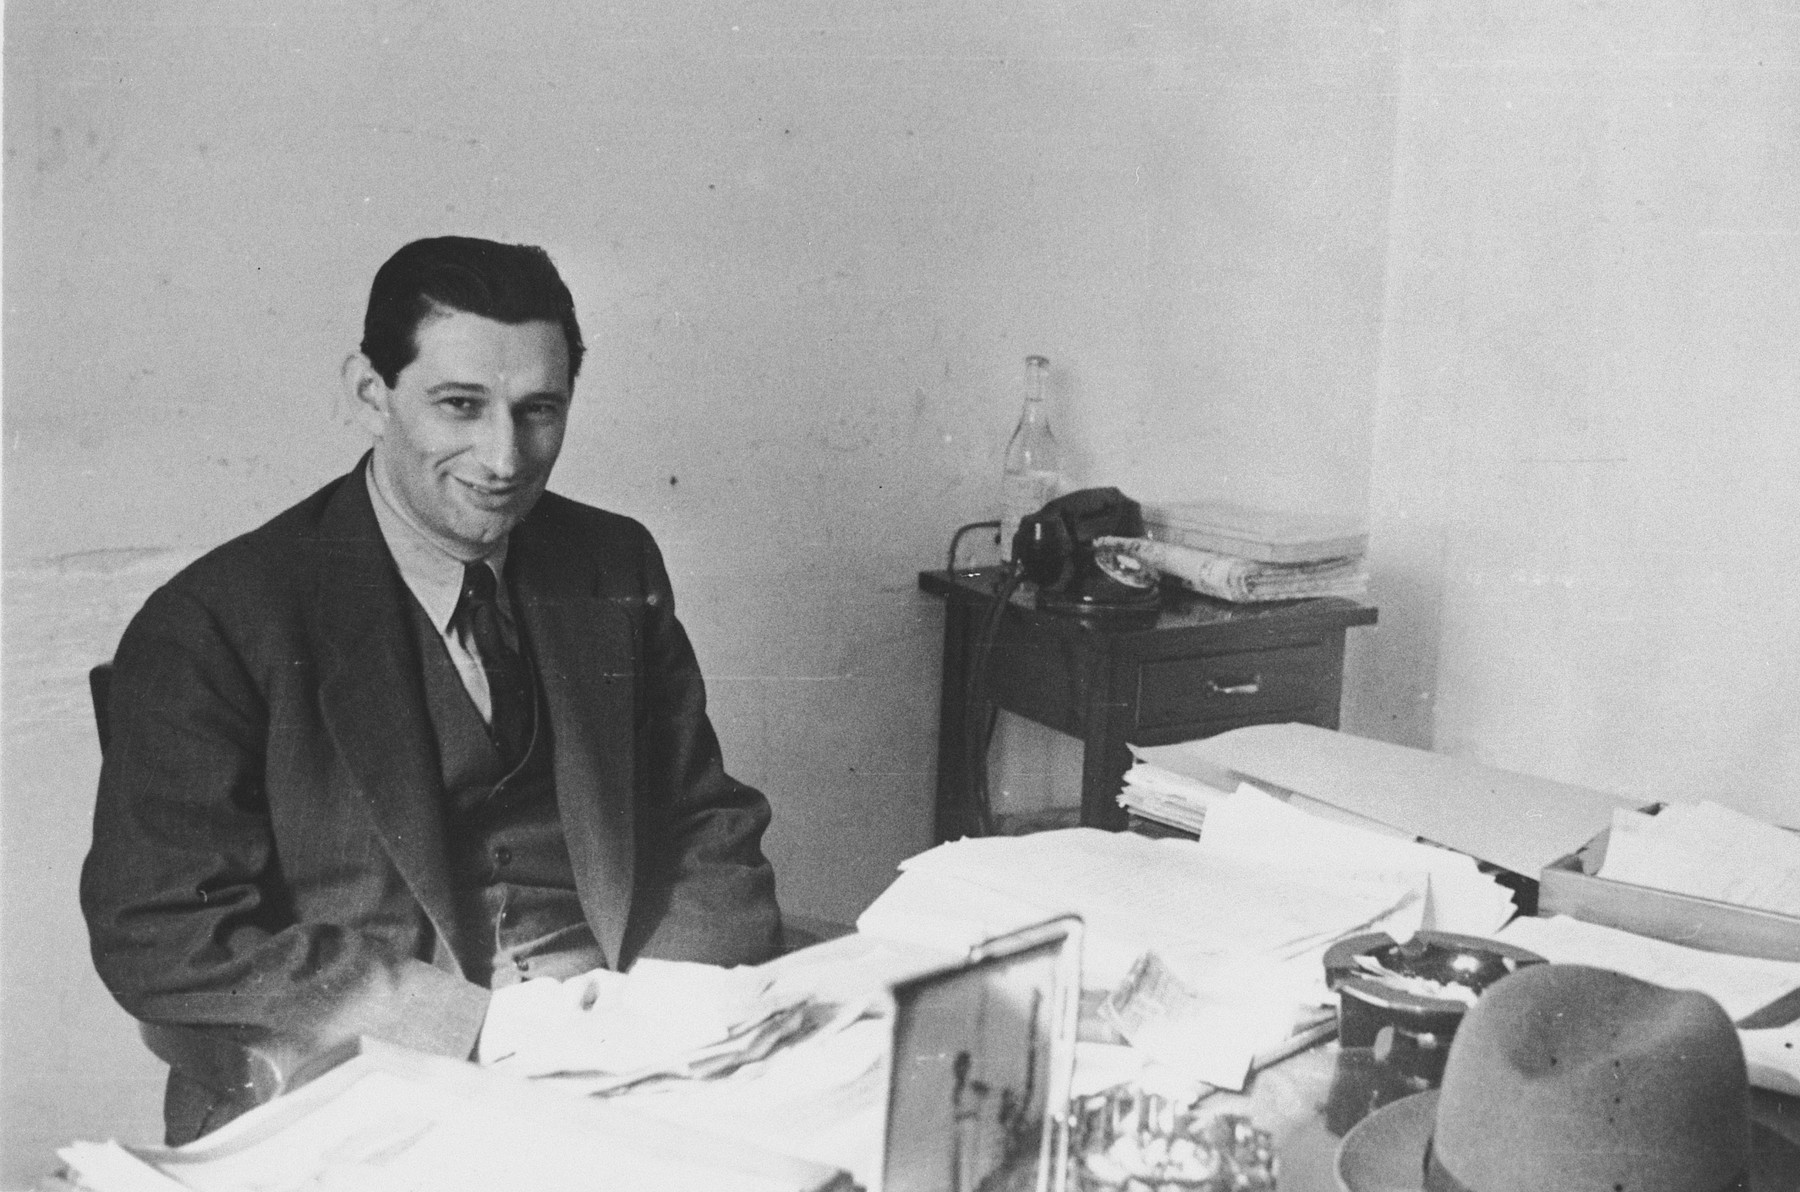 Joseph Schwartz, European director of the American Joint Distribution committee, at work in his office in Lisbon.